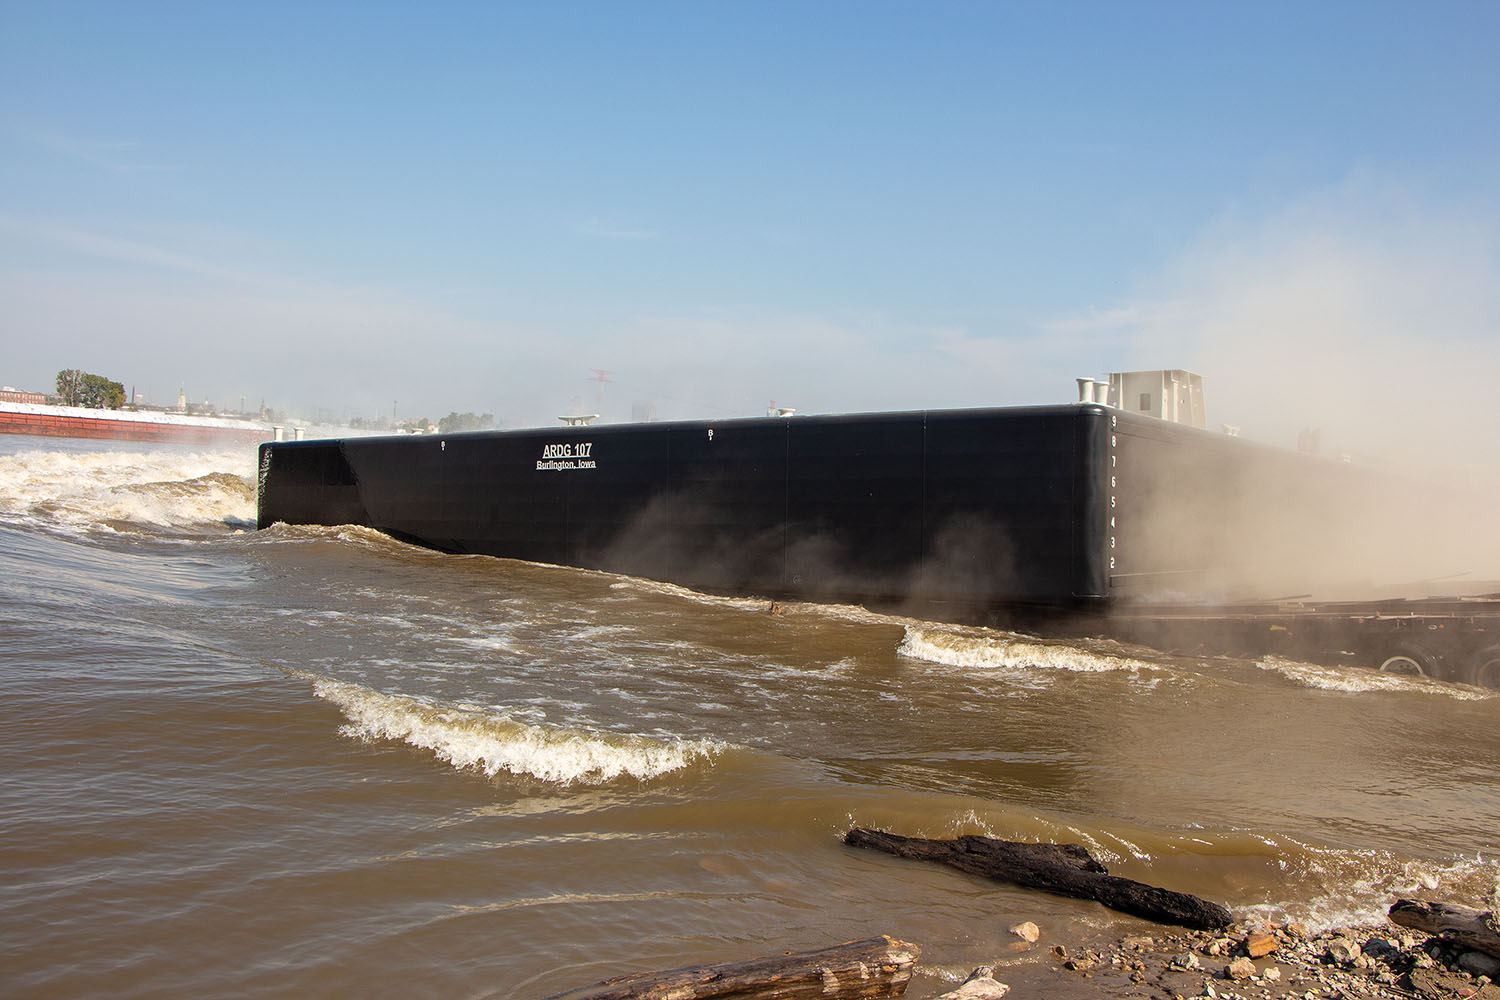 Eagle Fabrication's one-hundredth barge slides into the Mississippi River at Sauget, Ill. (Photo by Jason Koenig)